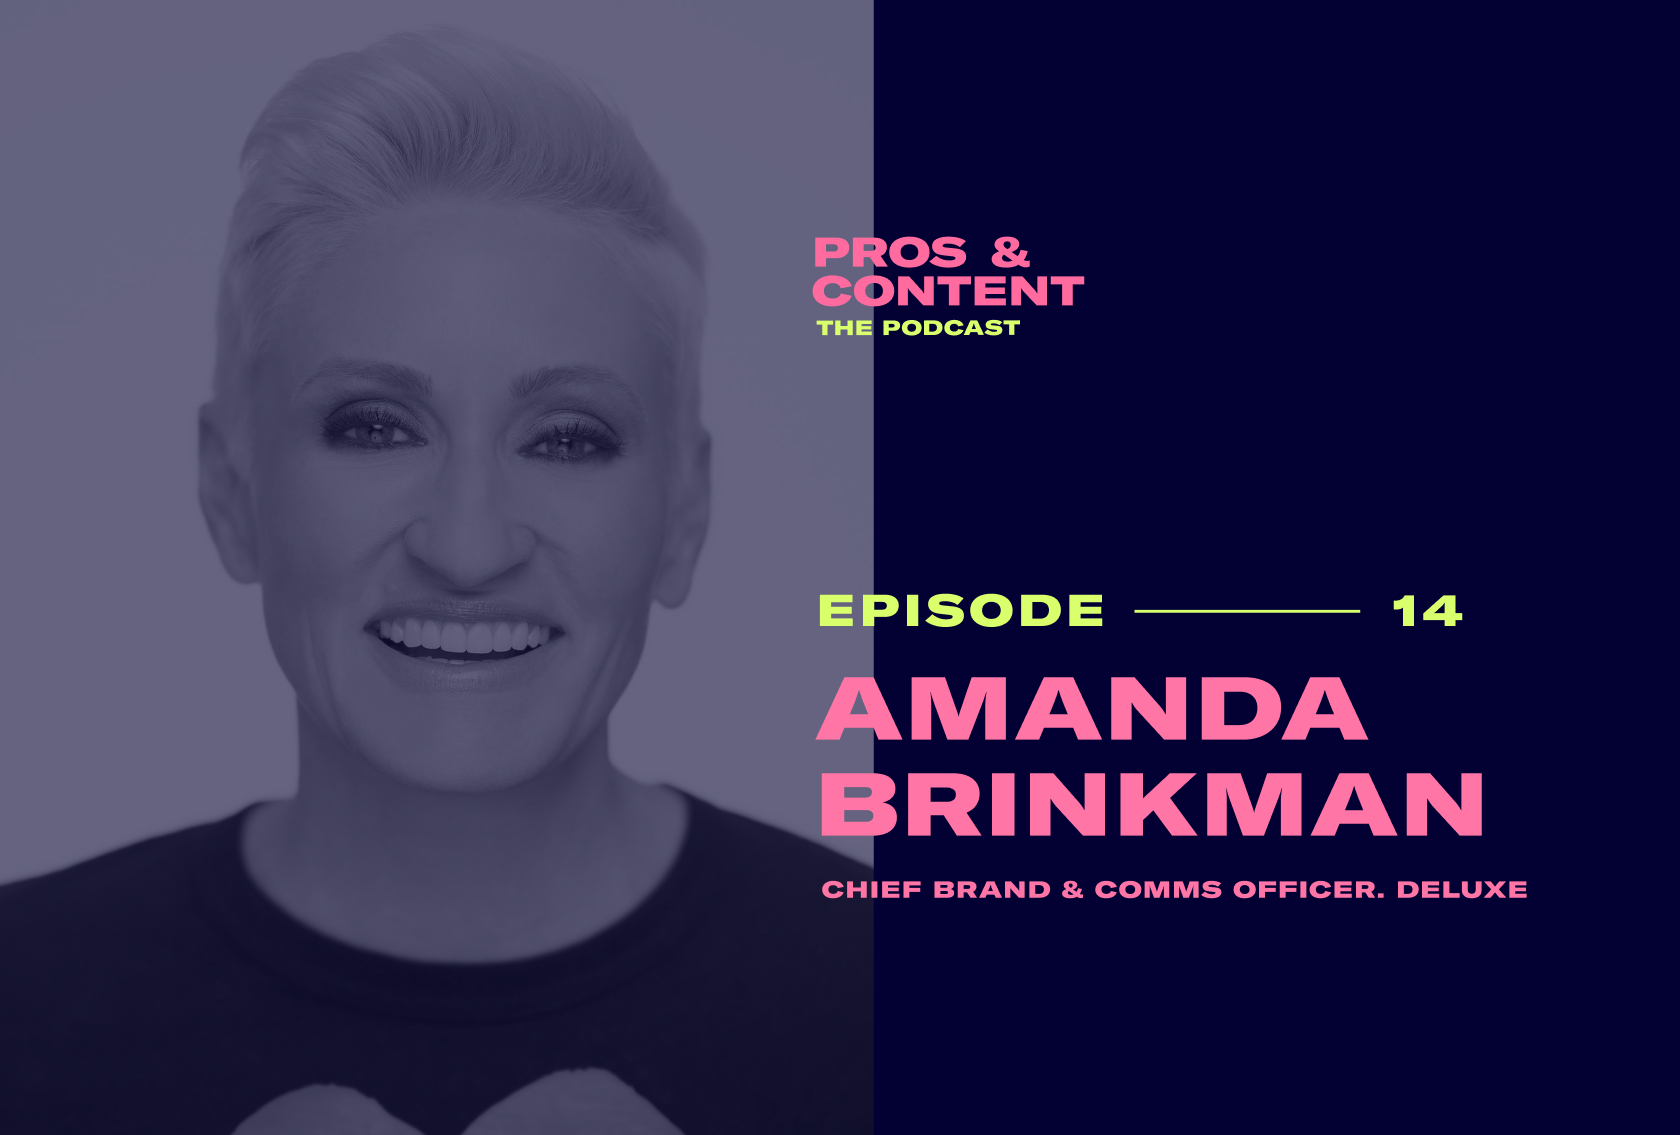 Pros & Content Podcast: Amanda Brinkman (Chief Brand & Comms Officer, Deluxe & Host, Small Business Revolution)